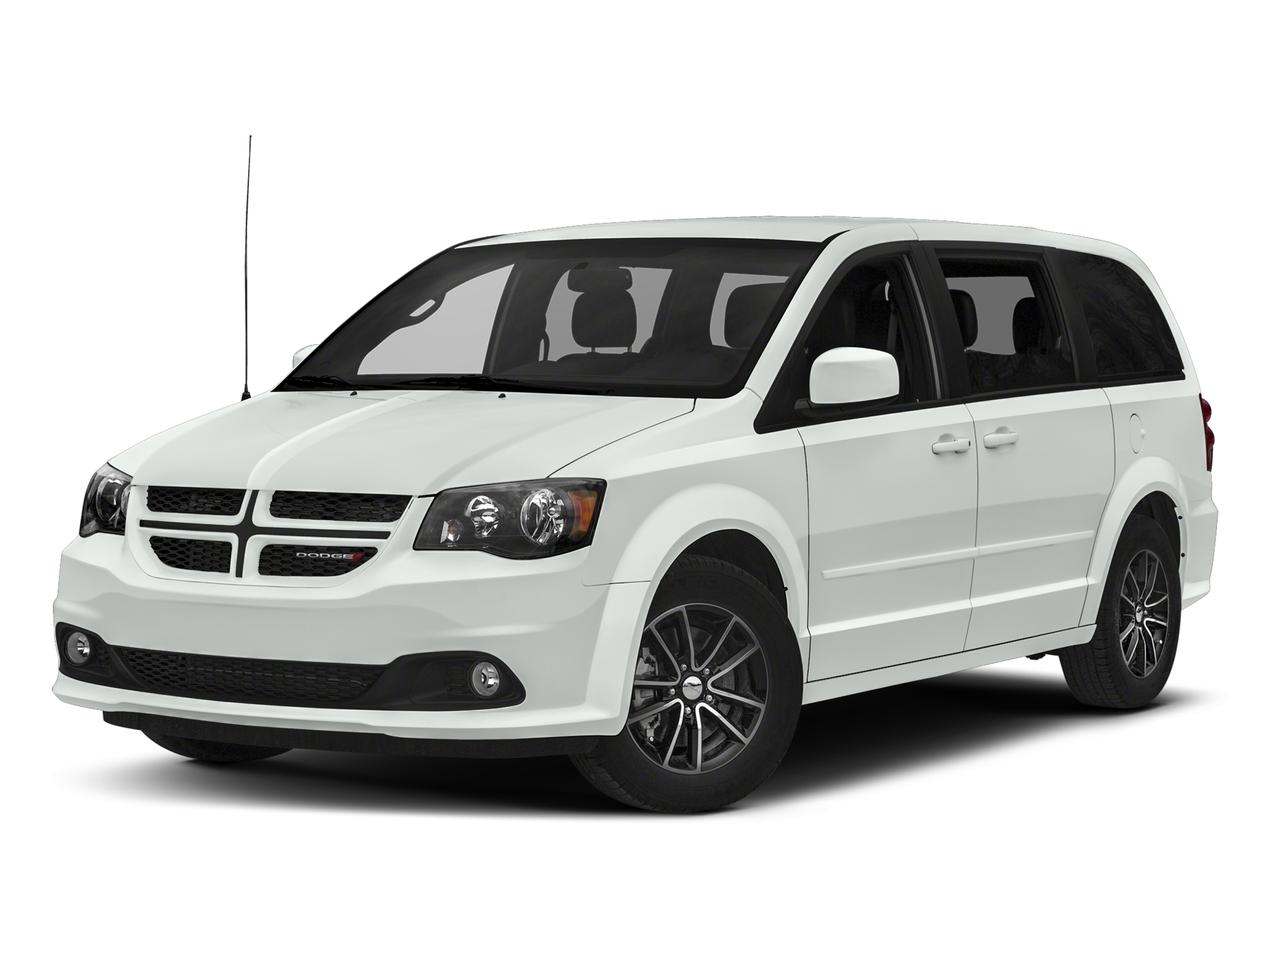 2017 Dodge Grand Caravan Vehicle Photo in Danbury, CT 06810